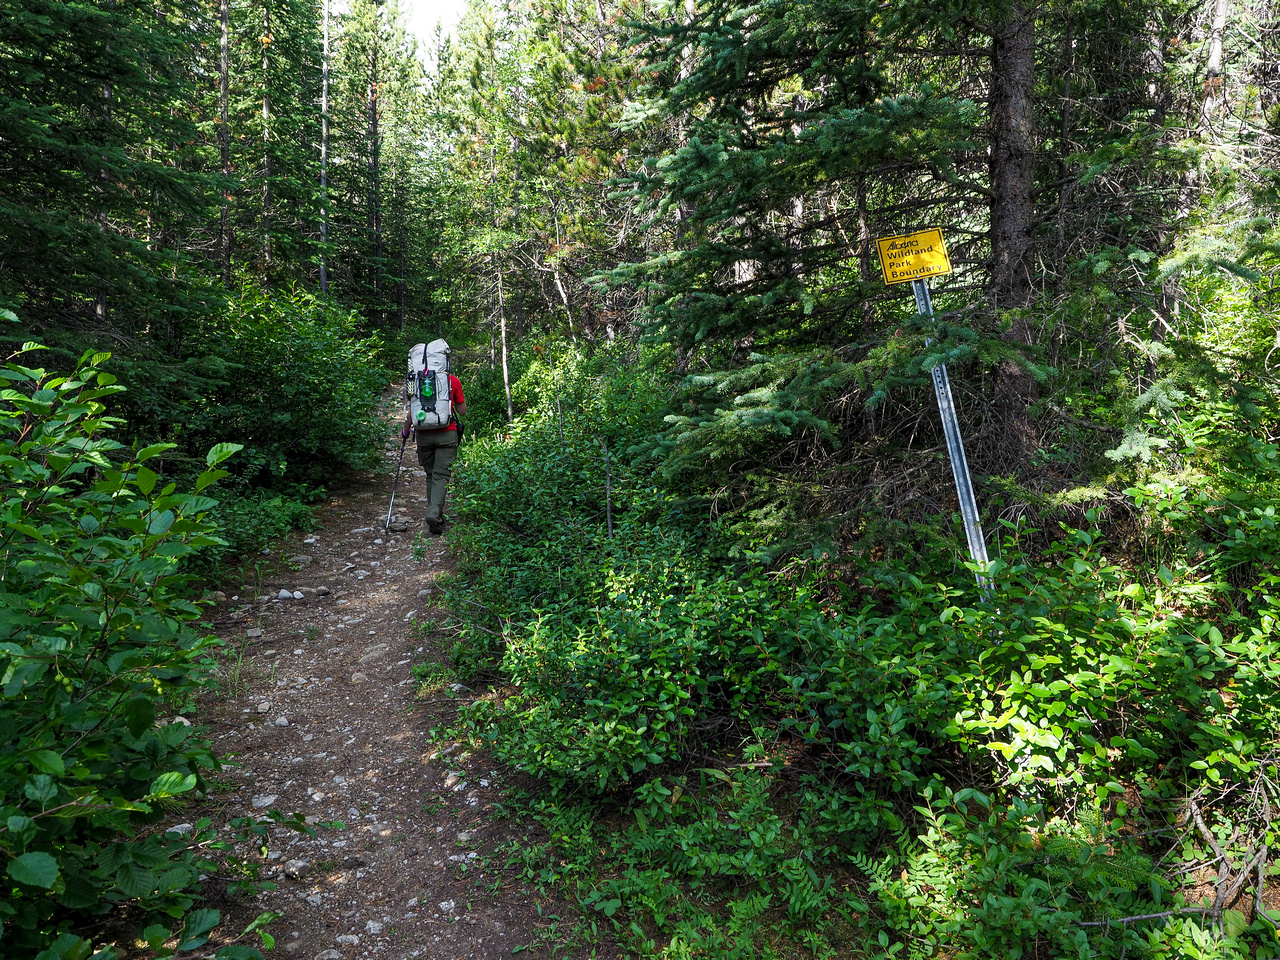 Entering the Don Getty Wildland Provincial Park.